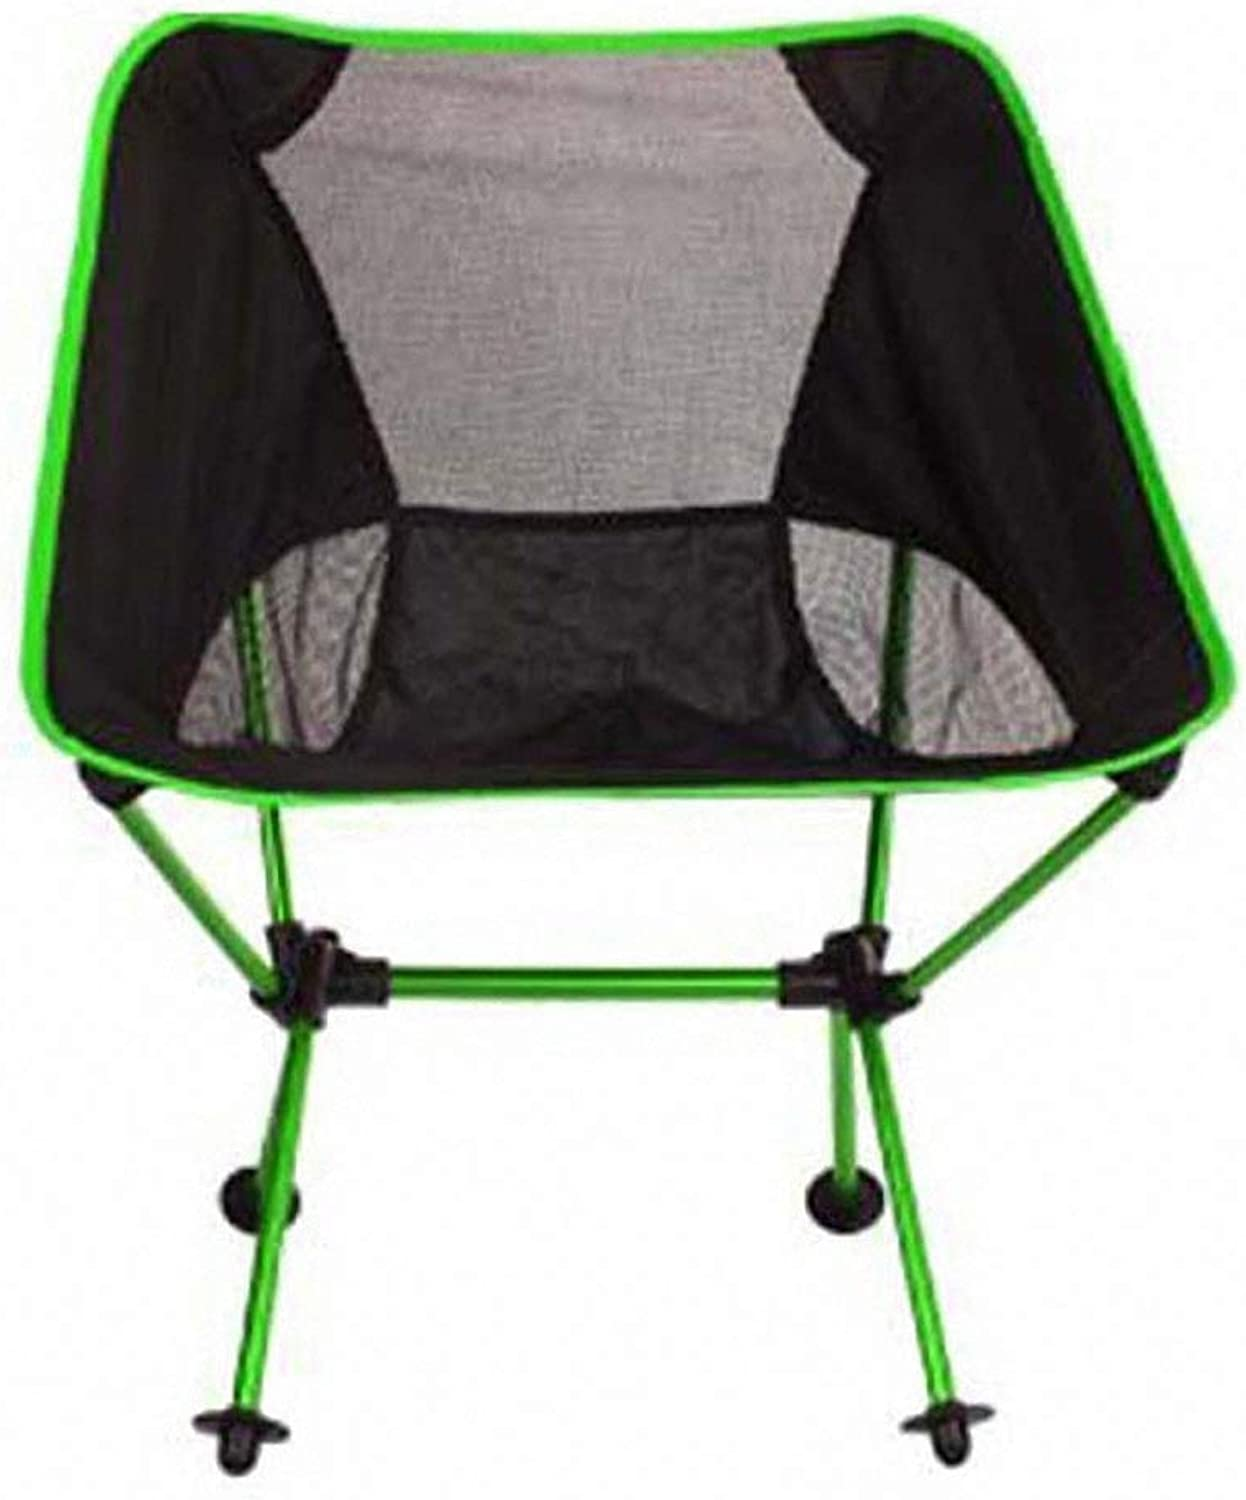 Folding Camping Chair Ultralight Outdoor Sports Hiking Fishing Portable Chair